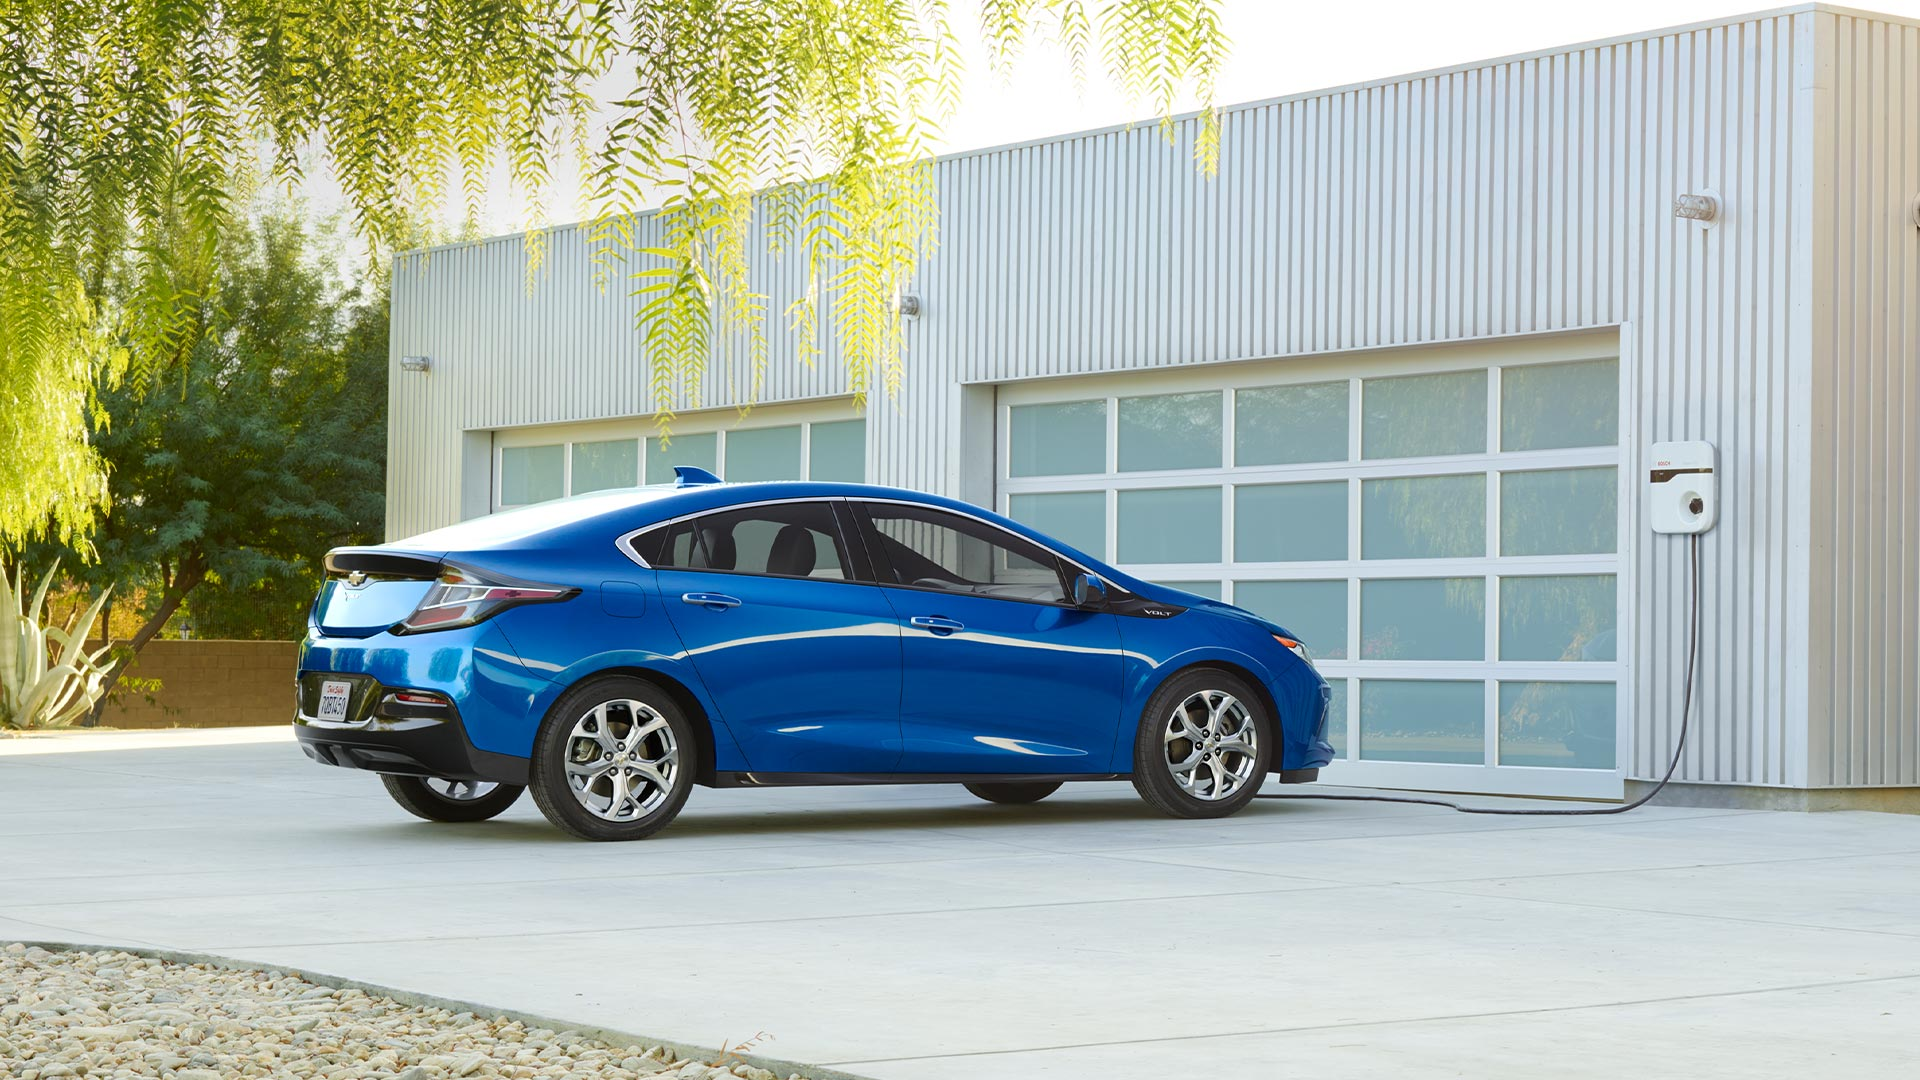 Valley Chevy Chevrolet 2017 Volt Blue Right Side Parked